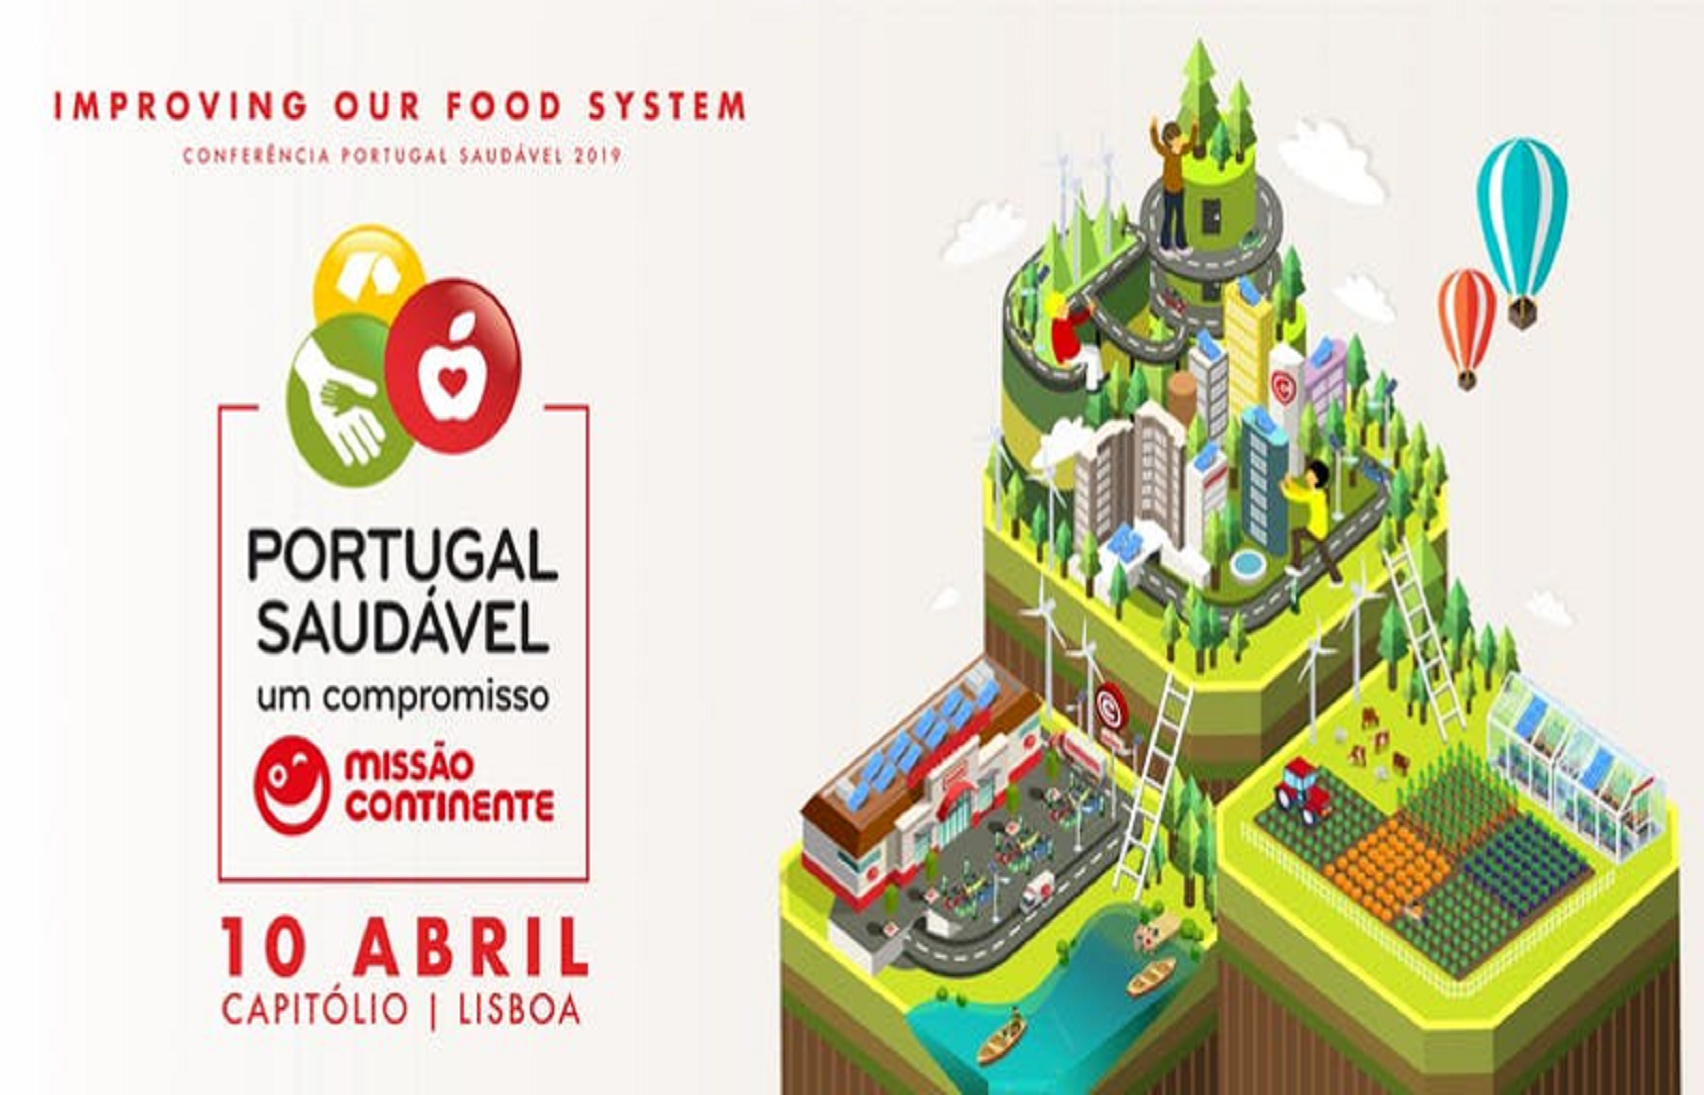 Conferência Portugal Saudável | Improving our food system